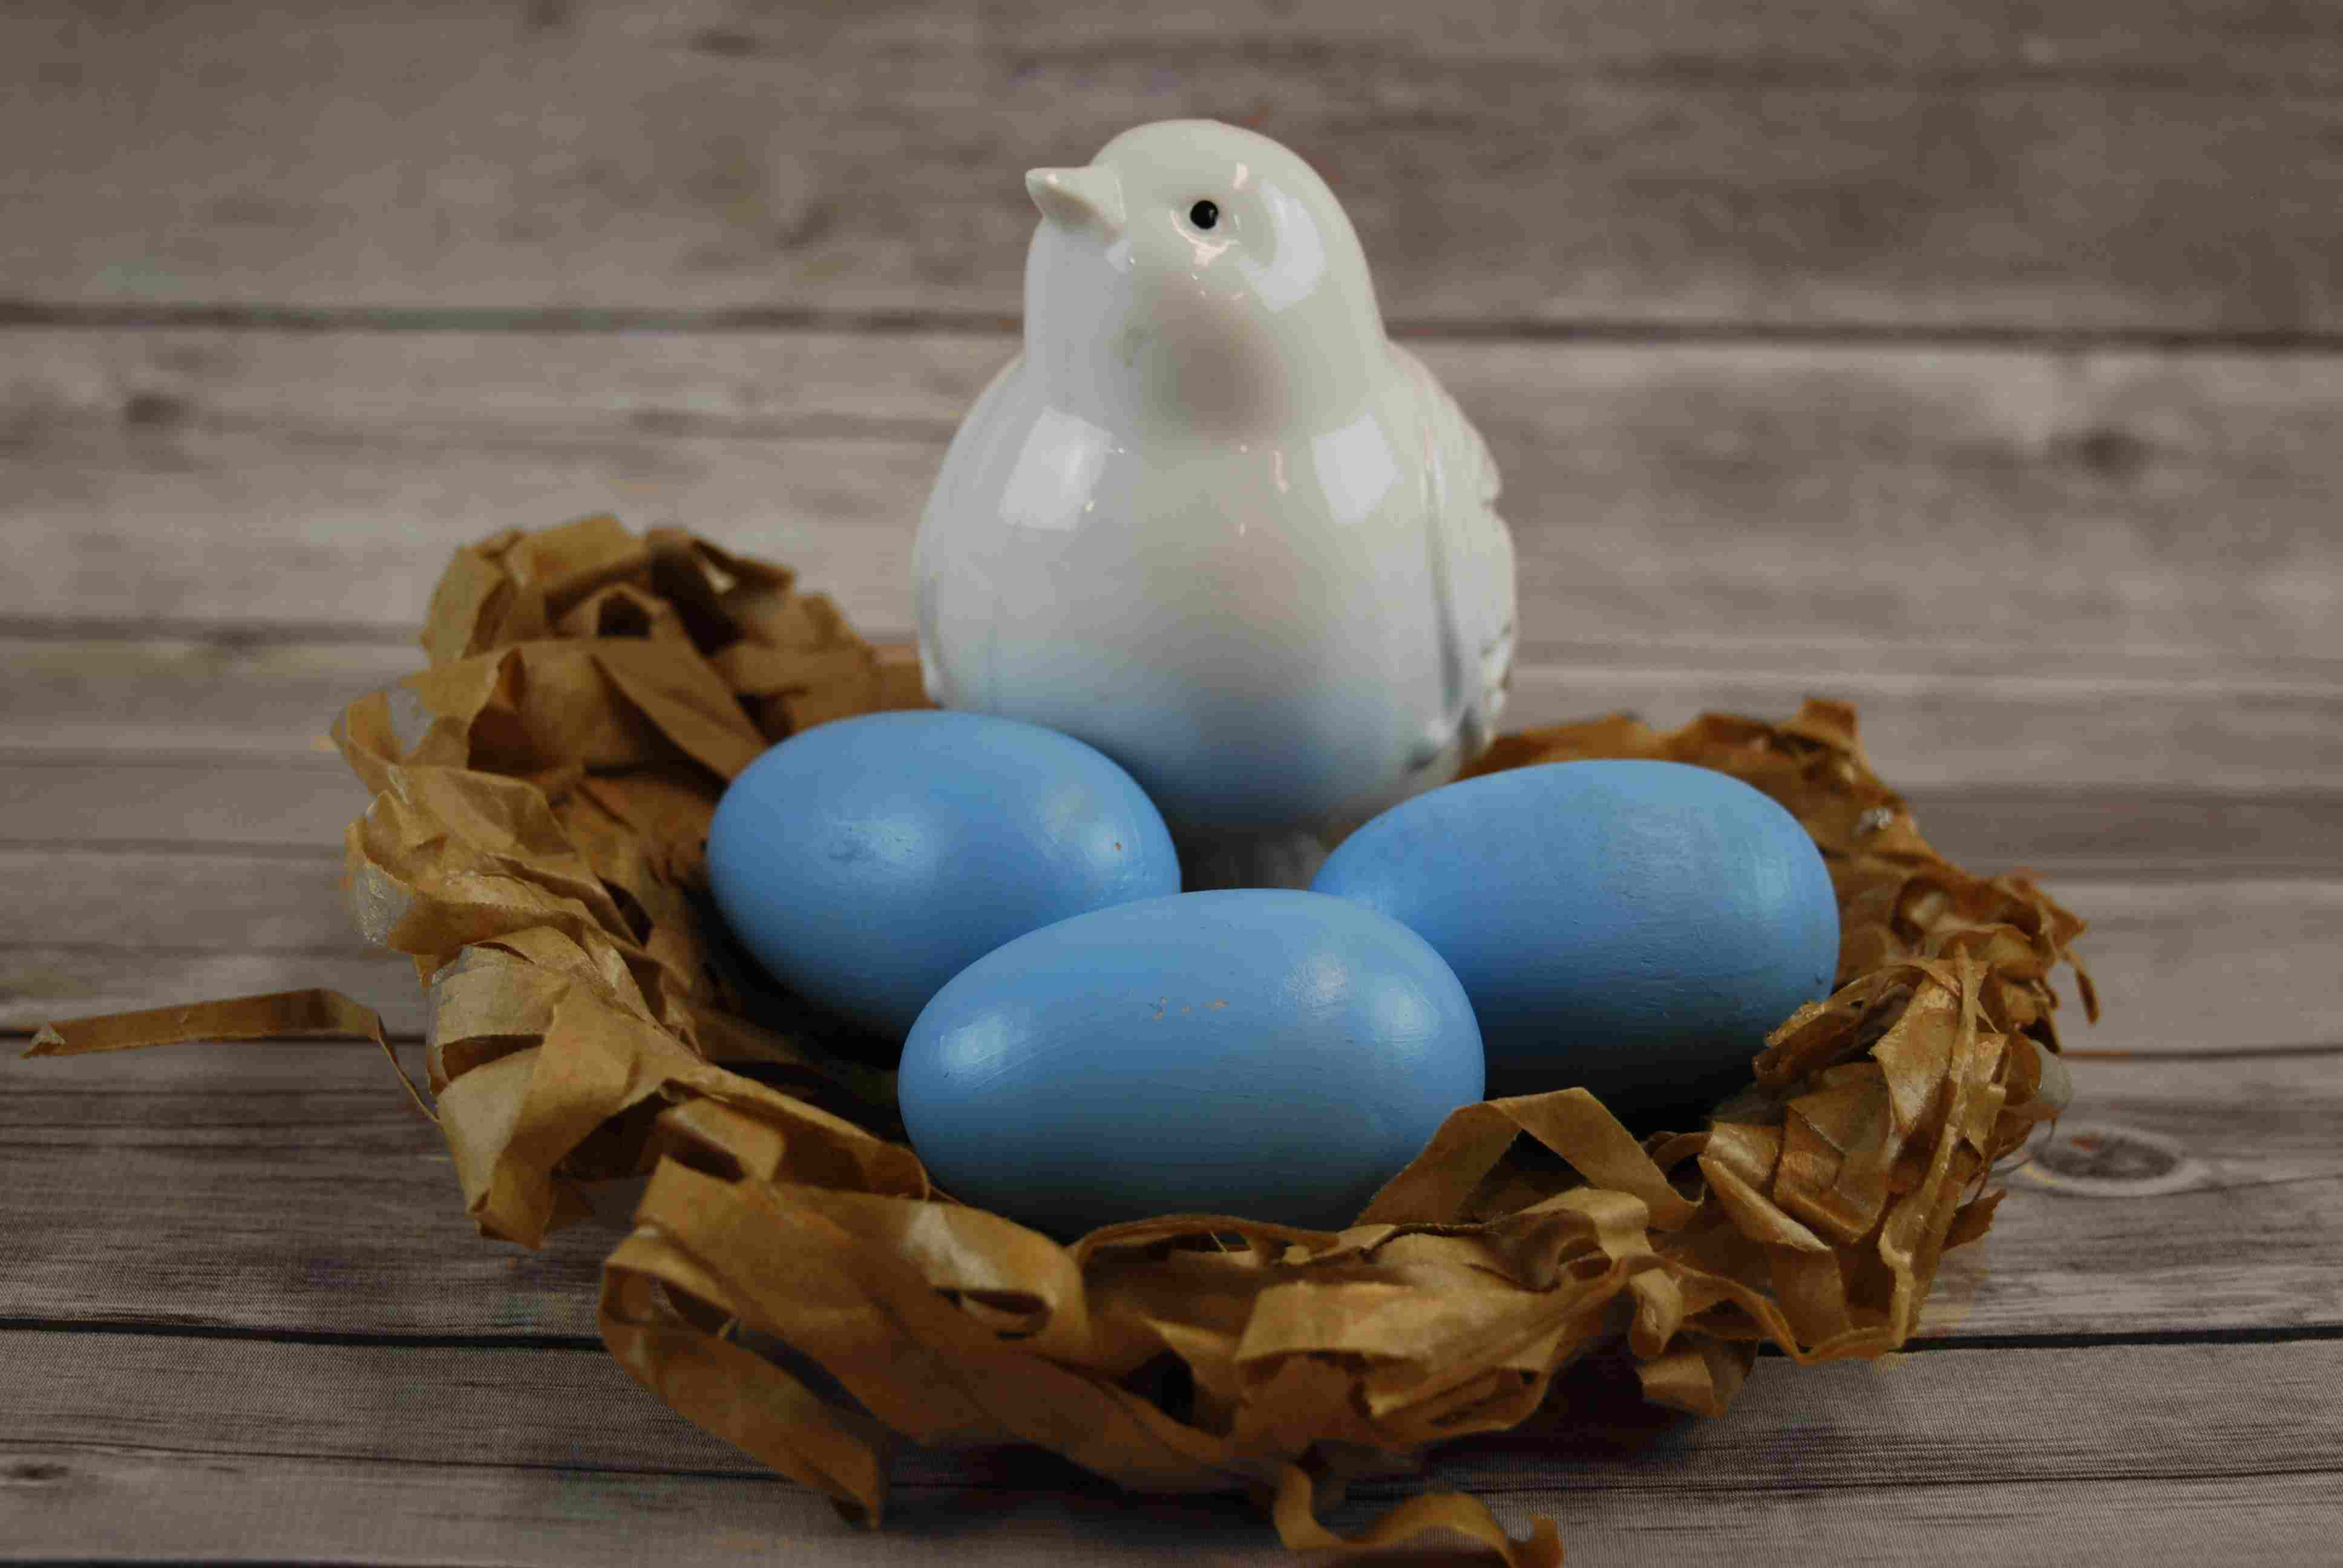 ceramic bird and wooden eggs in a paper nest